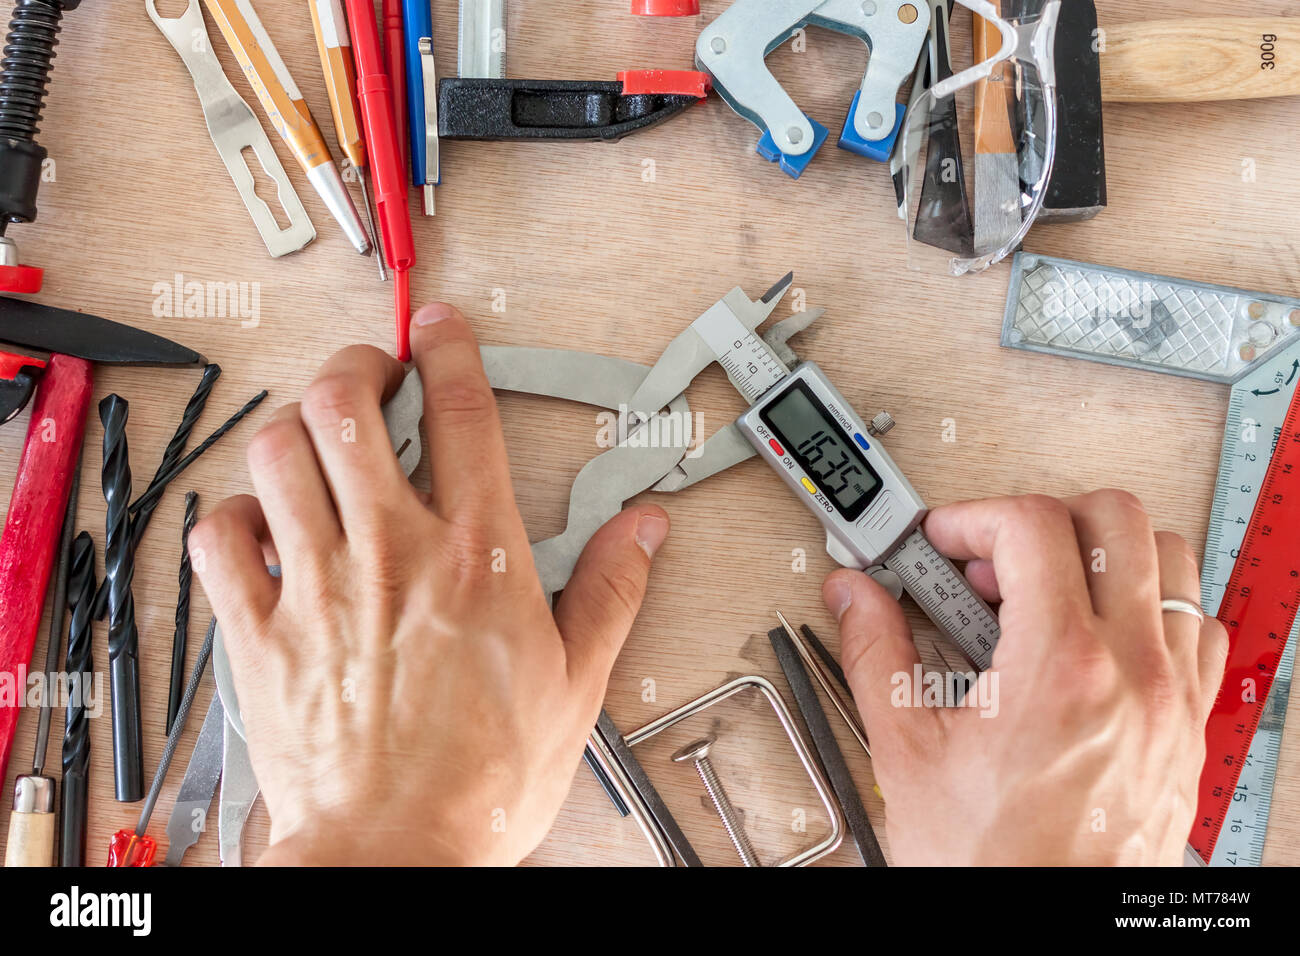 man measuting part with calipers in workshop - Stock Image